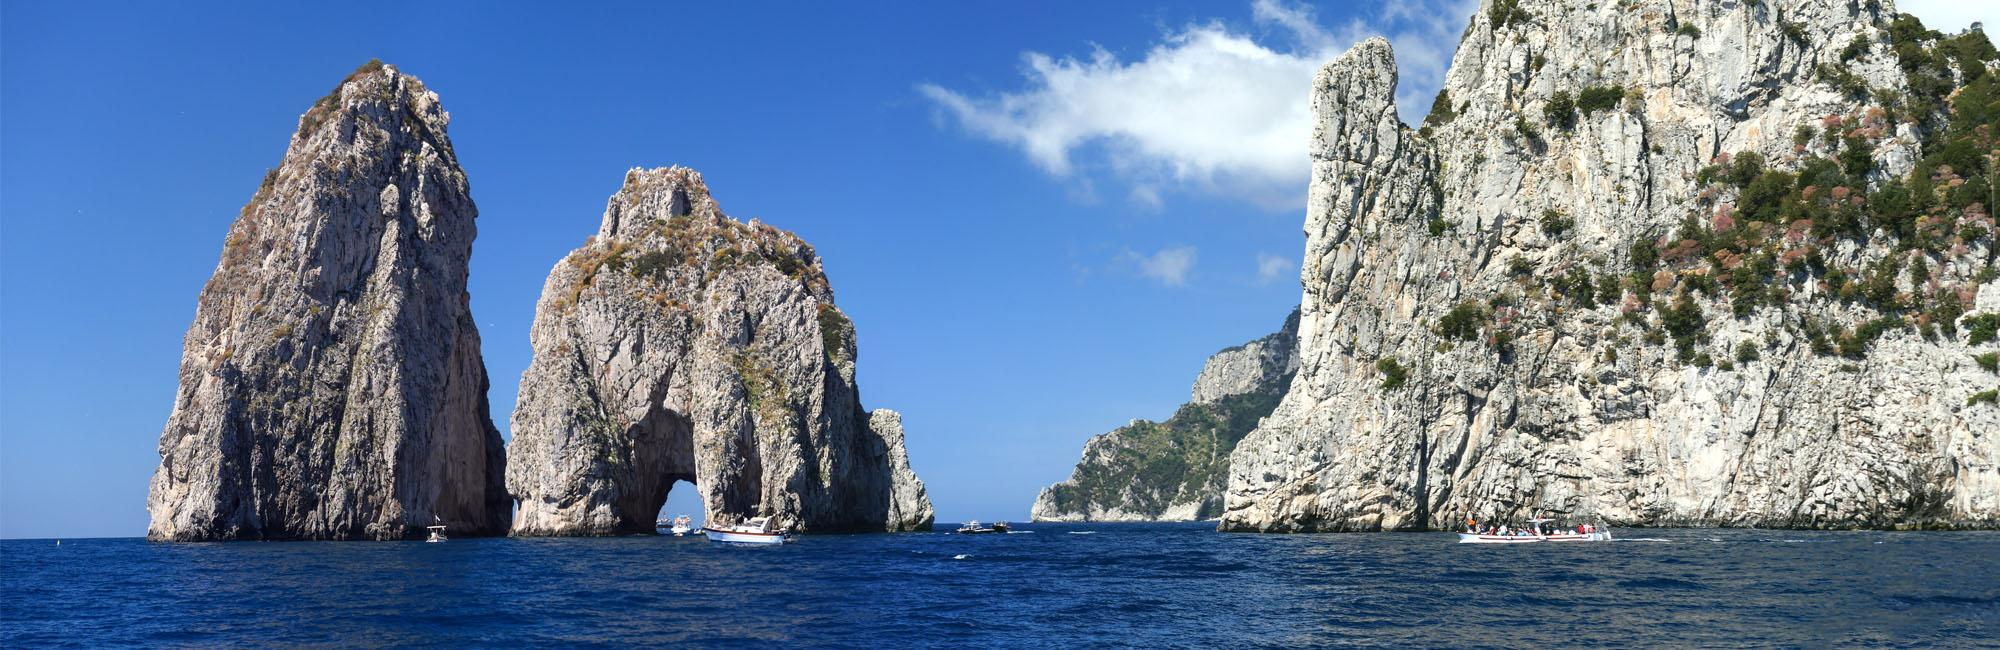 Amalfi Coast and Capri Island